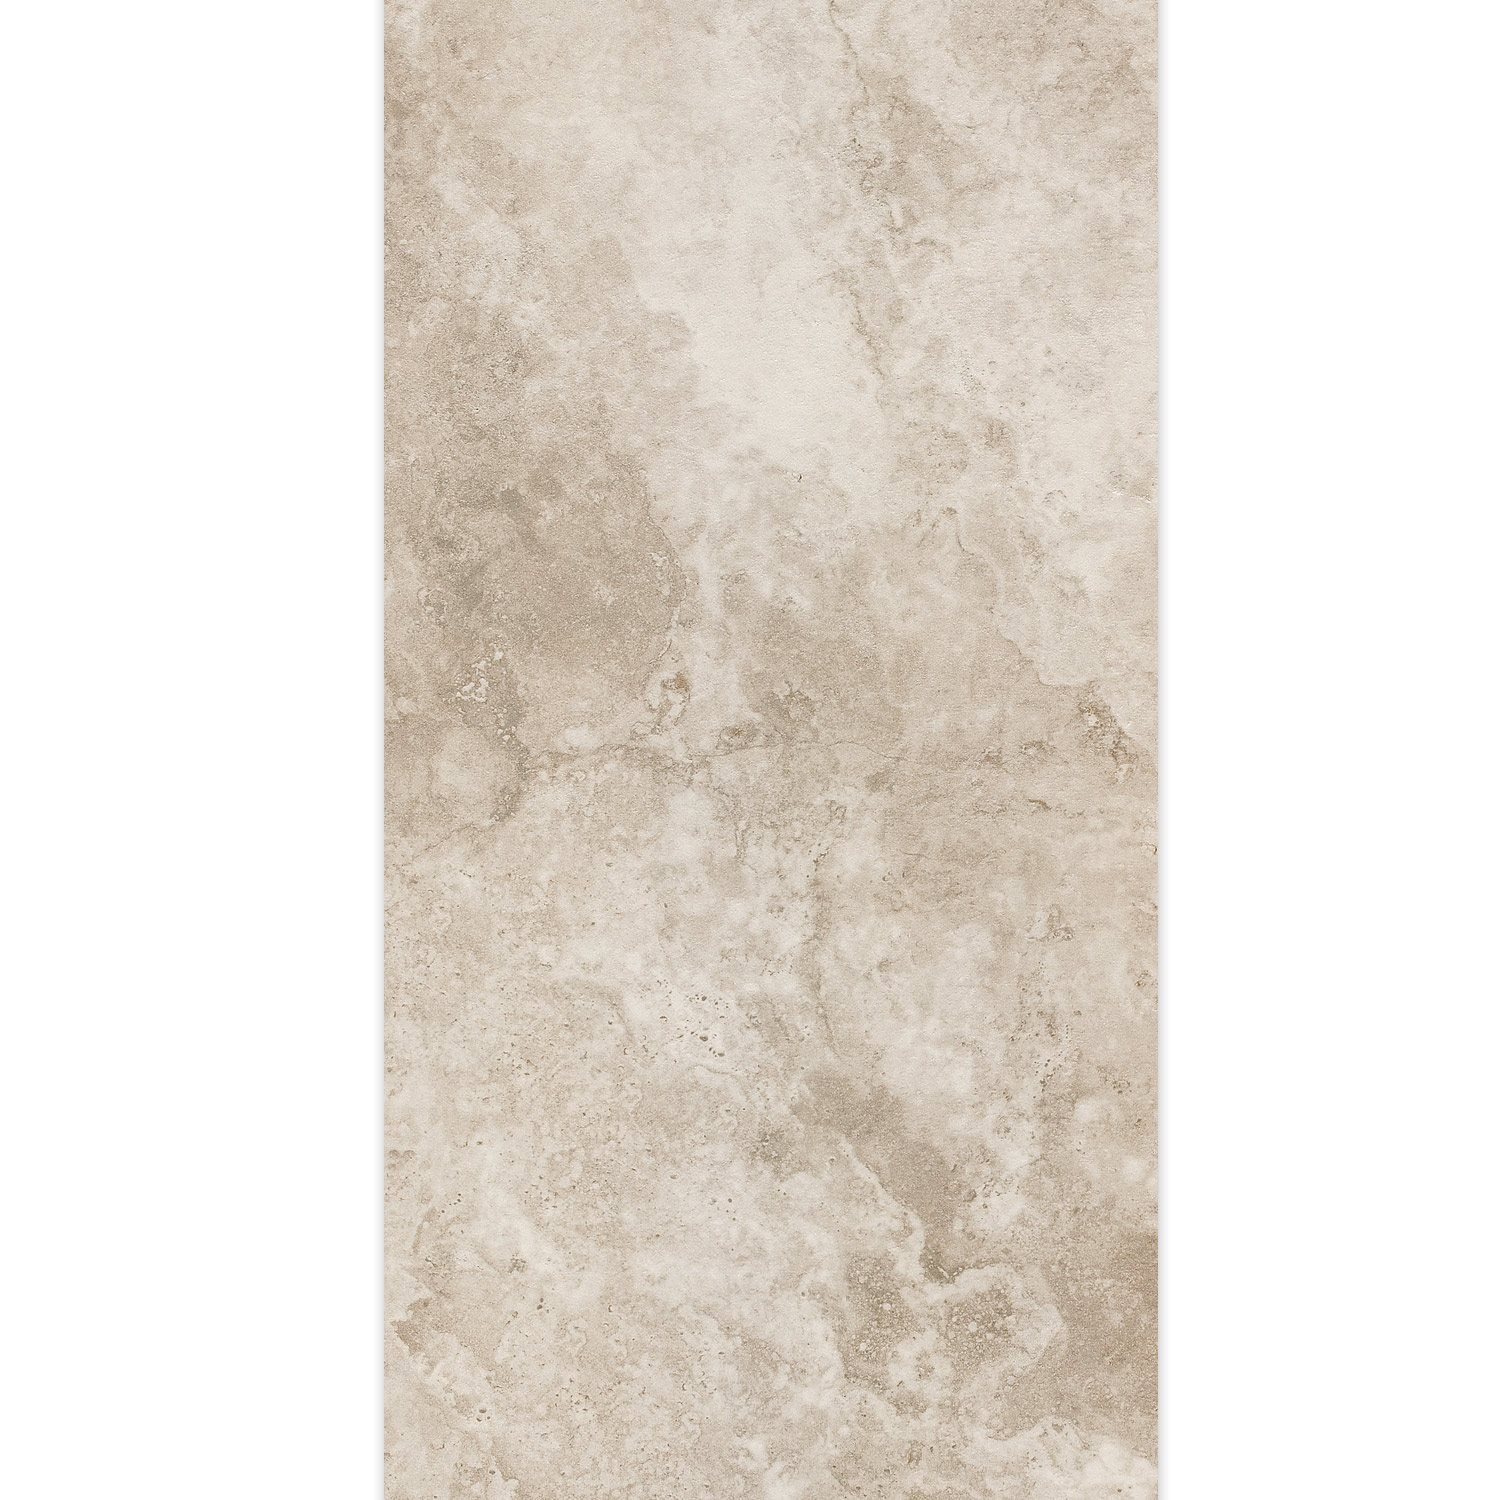 Carrelage Sol Travertine Gris 45x90cm